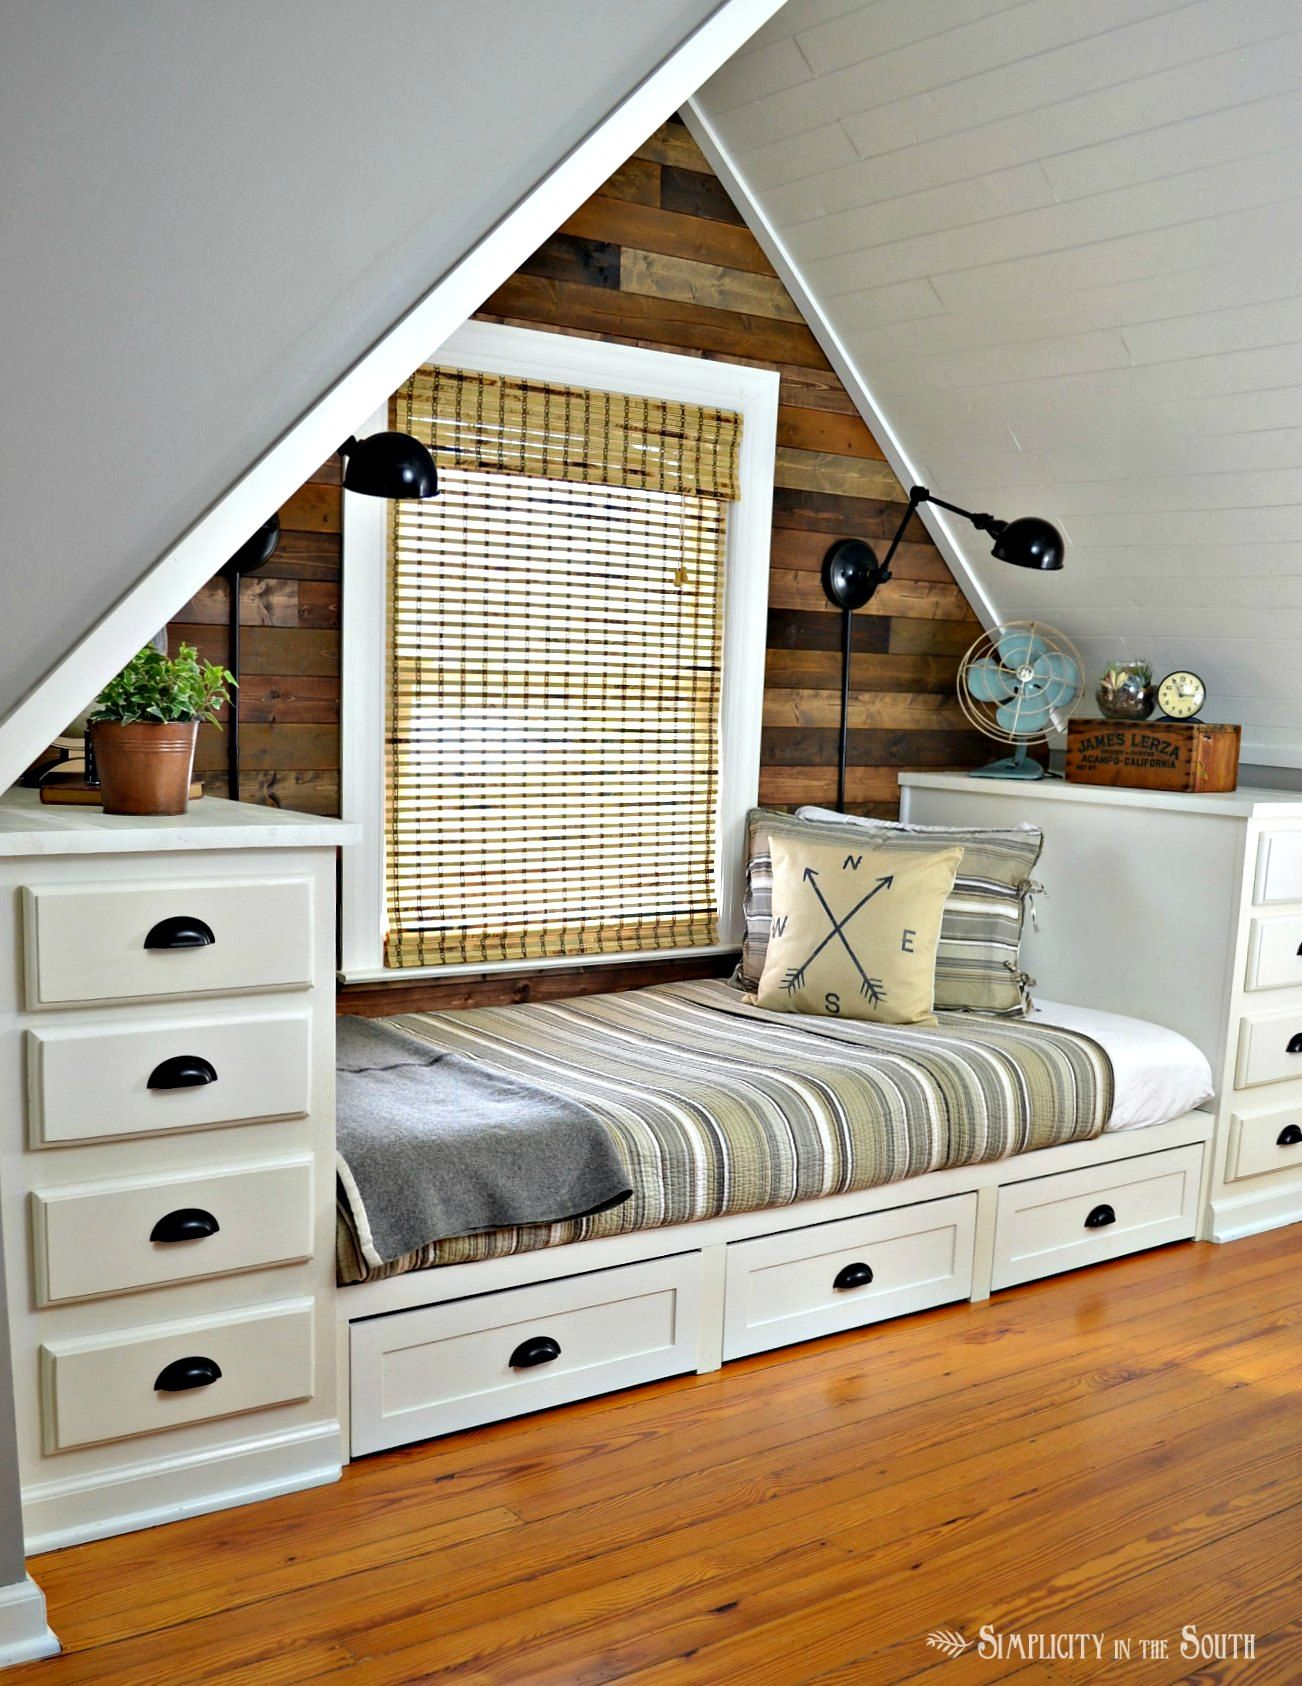 Best Ana White Built In Bed With Trundle Drawers Diy 400 x 300